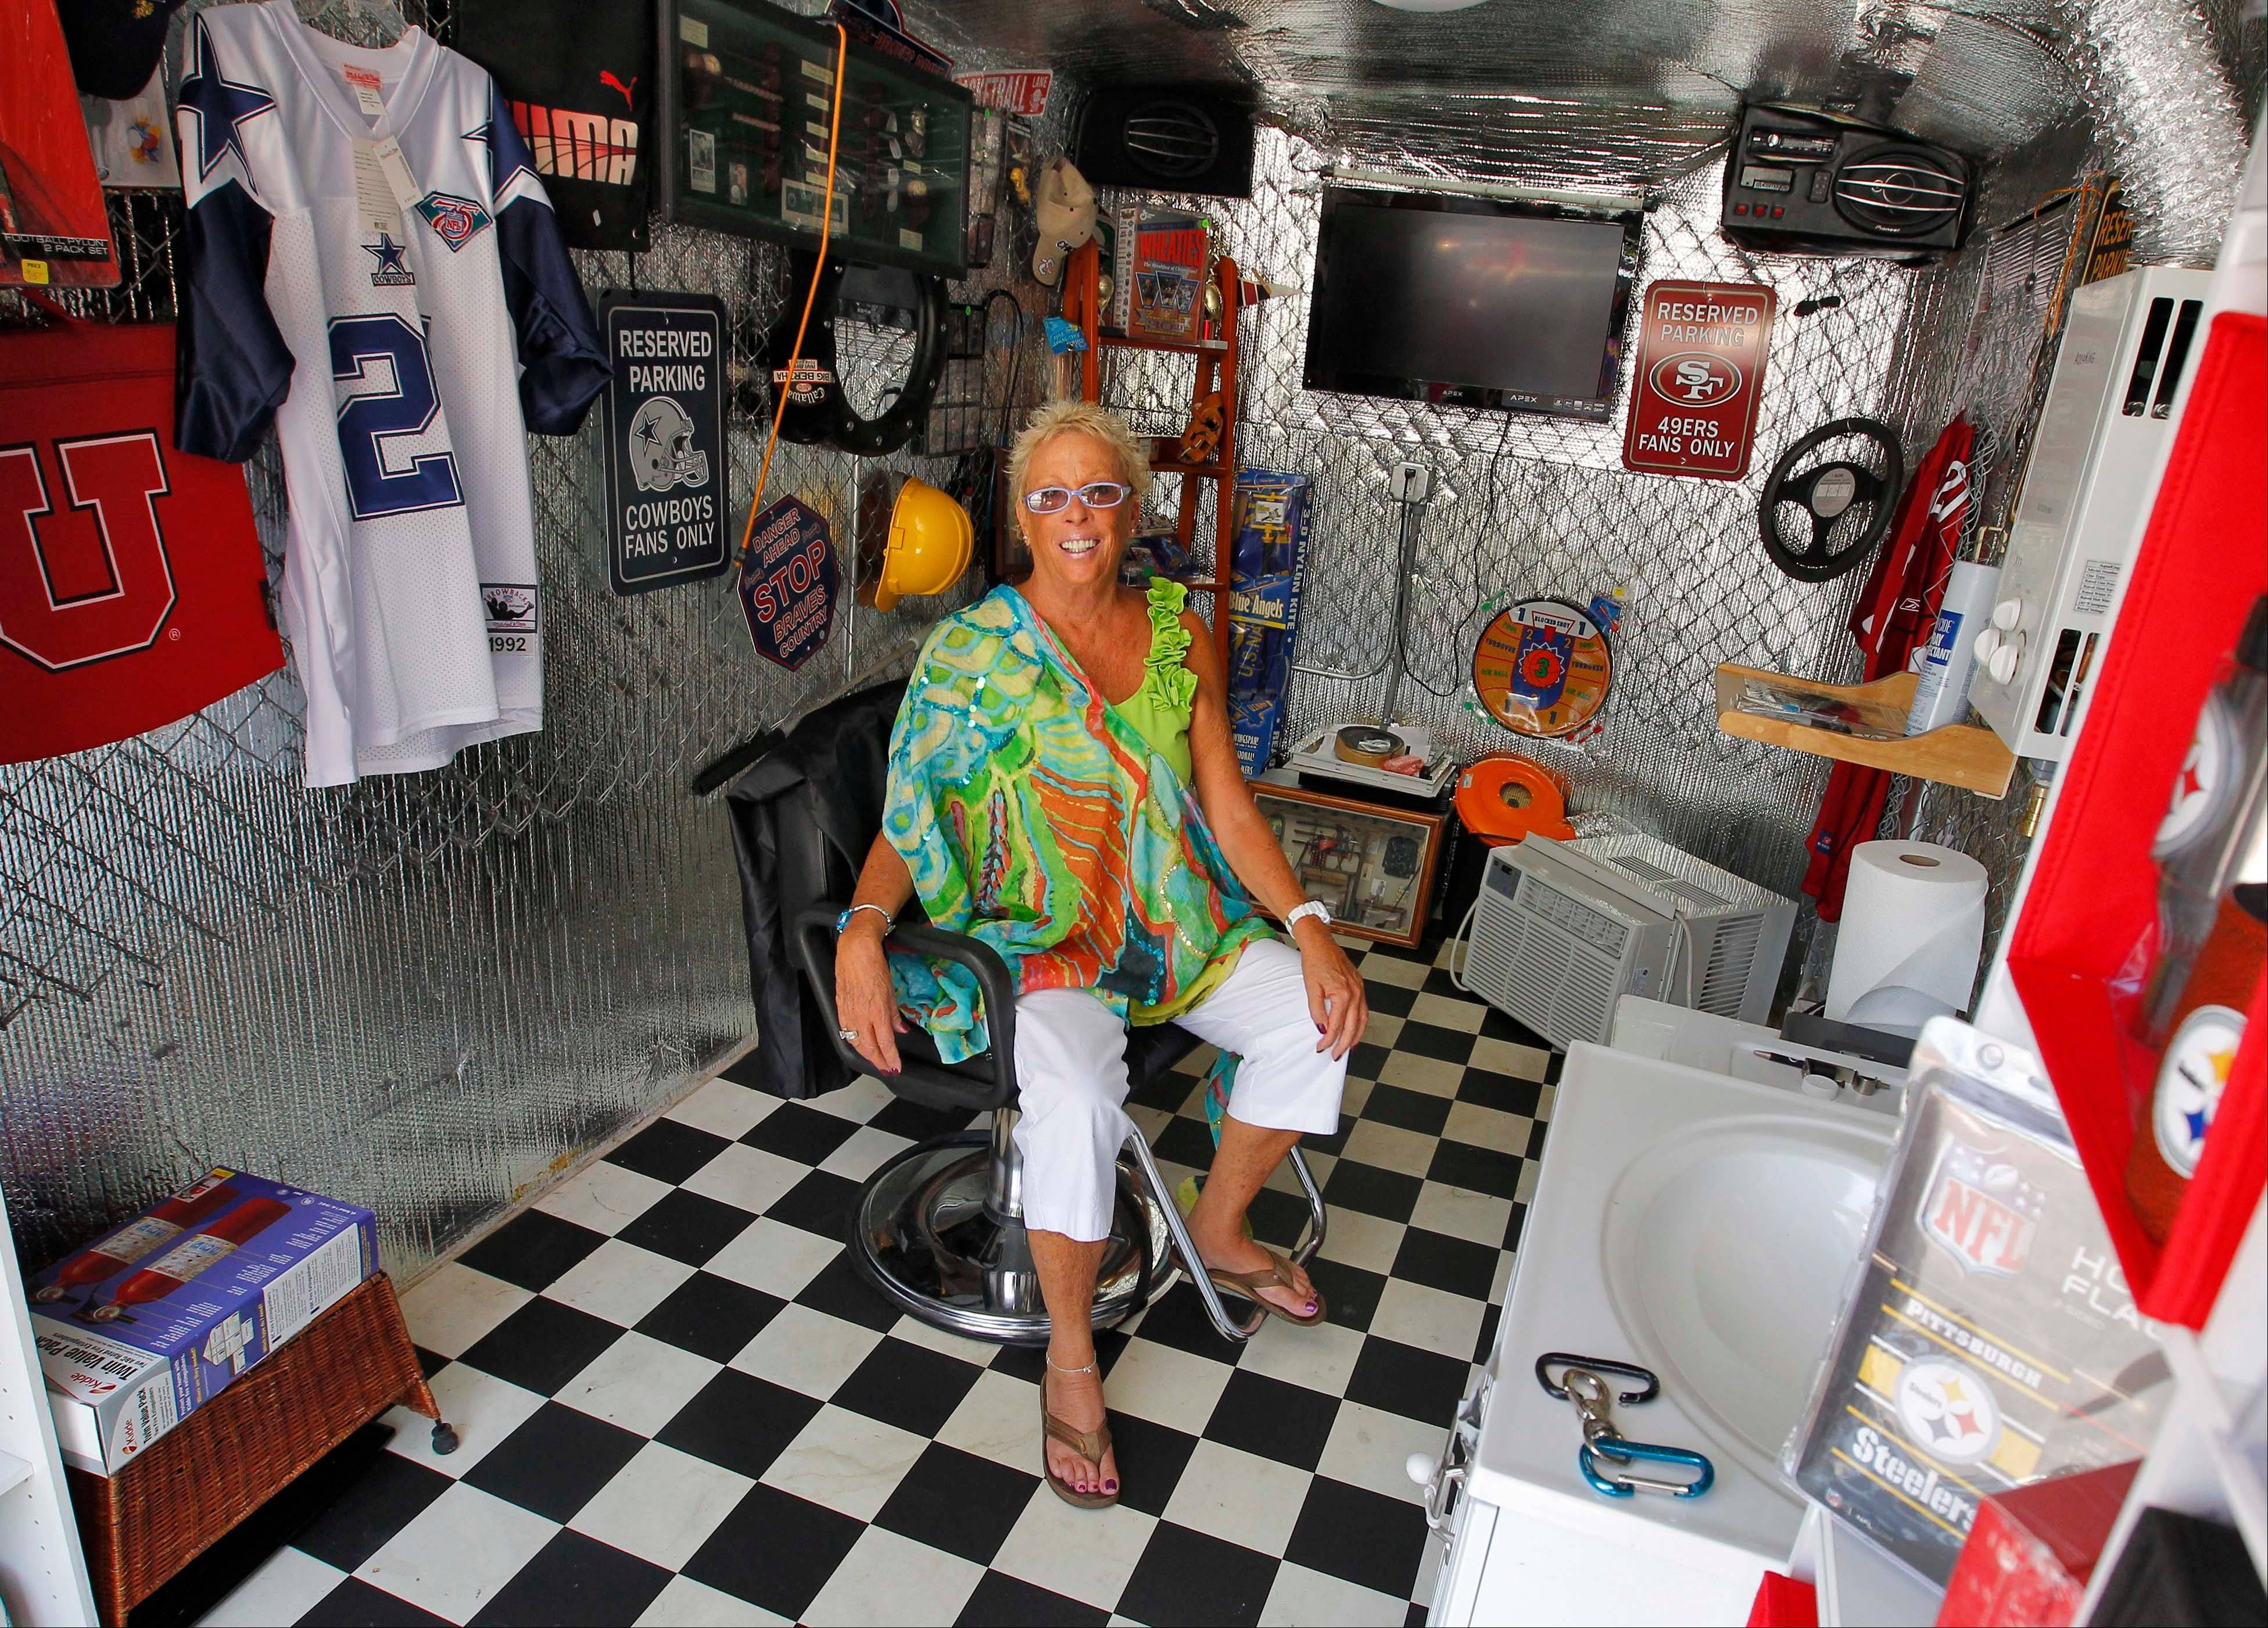 Julia Hutton sits inside her custom trailer July 31 in Phoenix. Hutton owns ExTreme ReTrailers, which designs custom trailers to look like mini stores on wheels. The trailers include wireless credit card machines, changing rooms and air conditioning. Hutton is among a handful of mobile retails stores across the U.S. hocking vintage accessories, sexy shoes and denim to die for in their haute wheels.